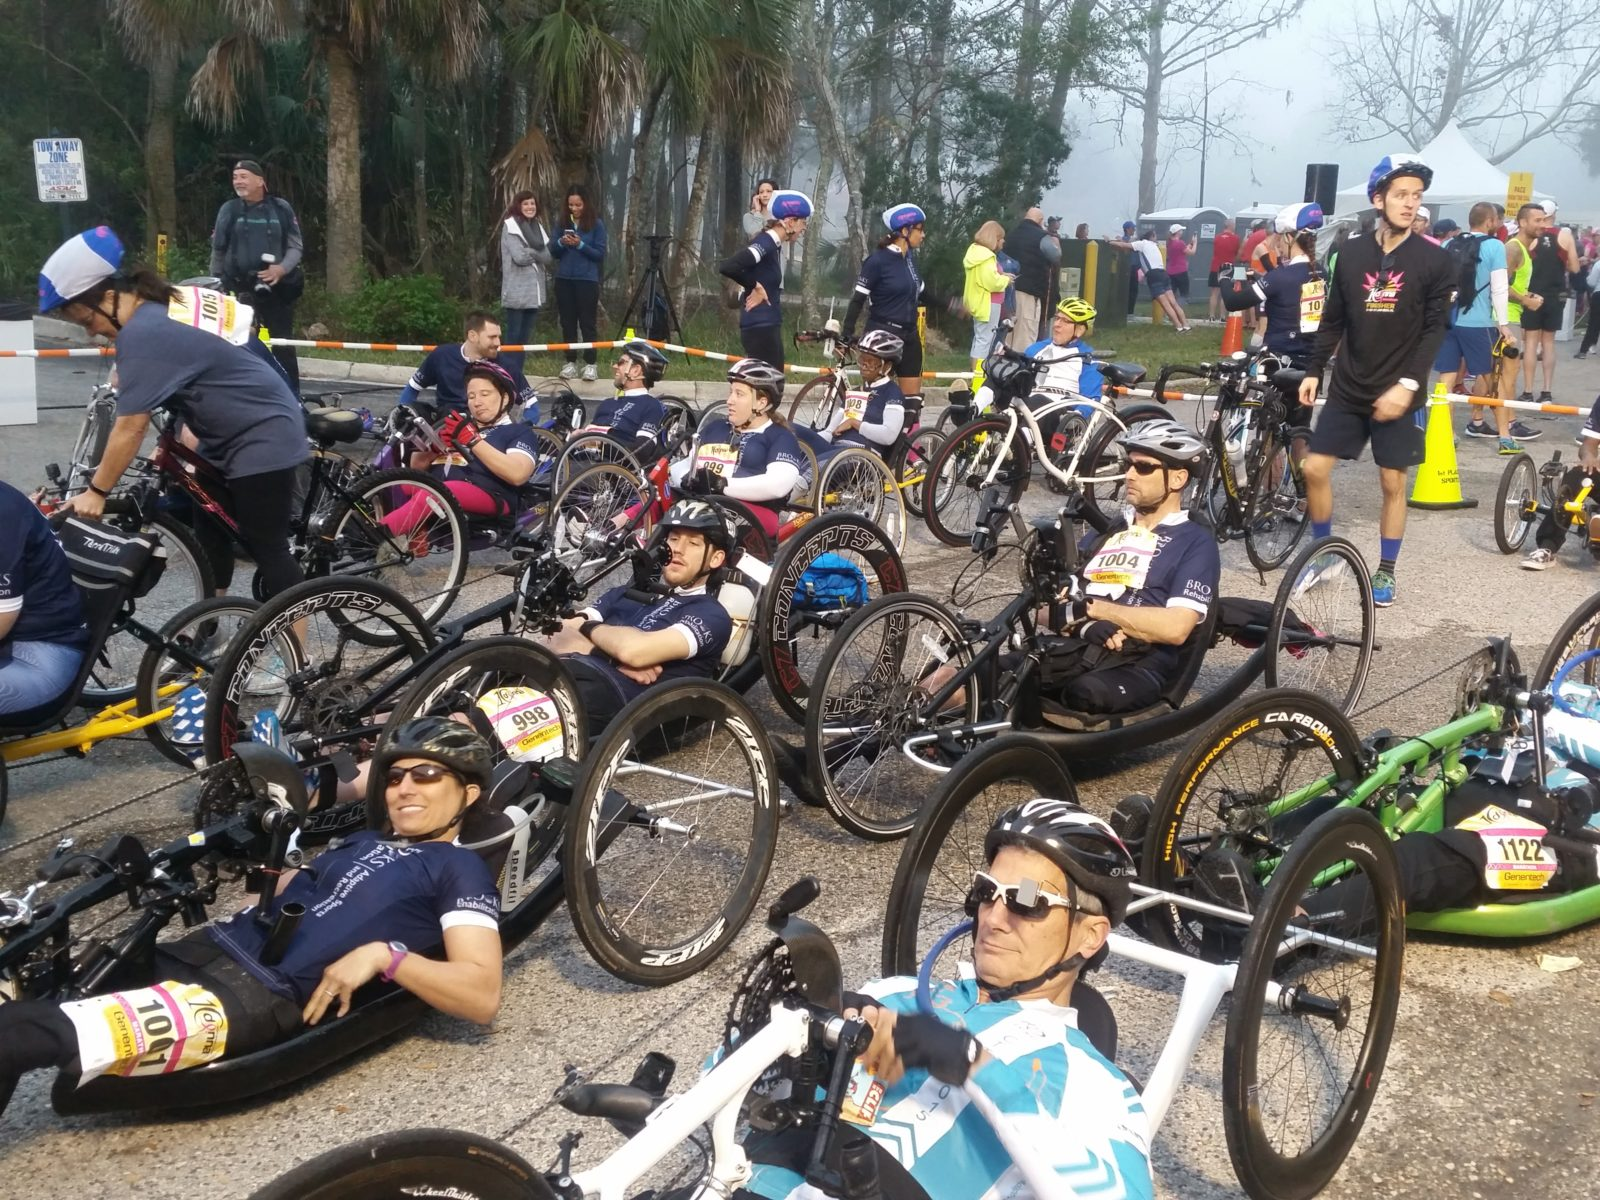 A group of male and female bikers get ready to bike 26.2 miles